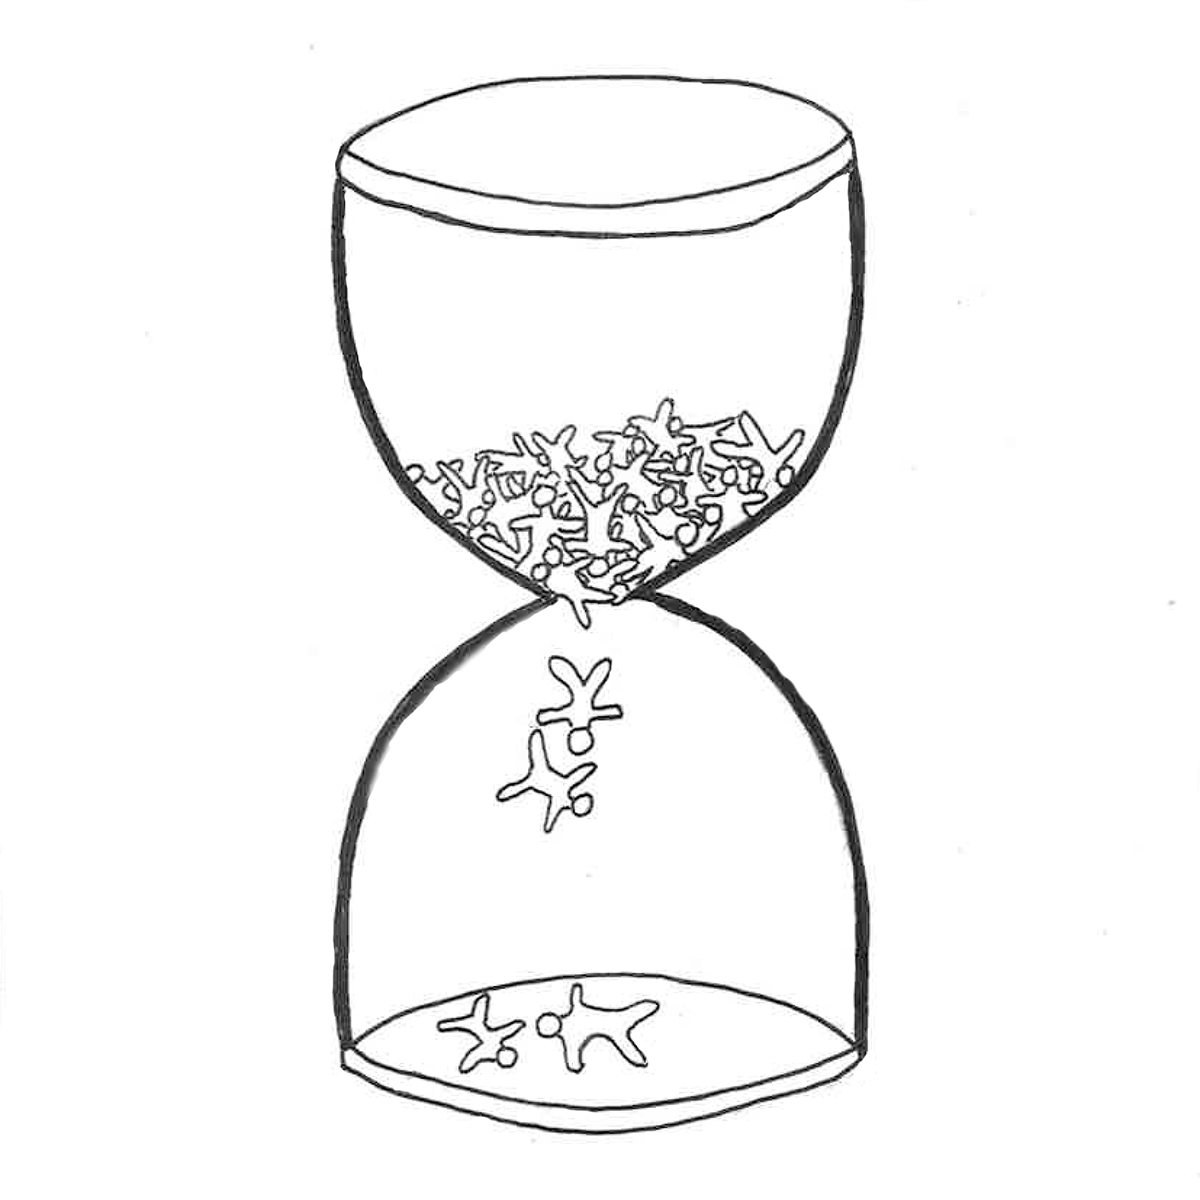 henry deane hourglass on behance Hourglass Tattoo Drawings making the hourglass similar to the henry deane plaza was difficult due to the lack of many prominent features other than the fountain feature